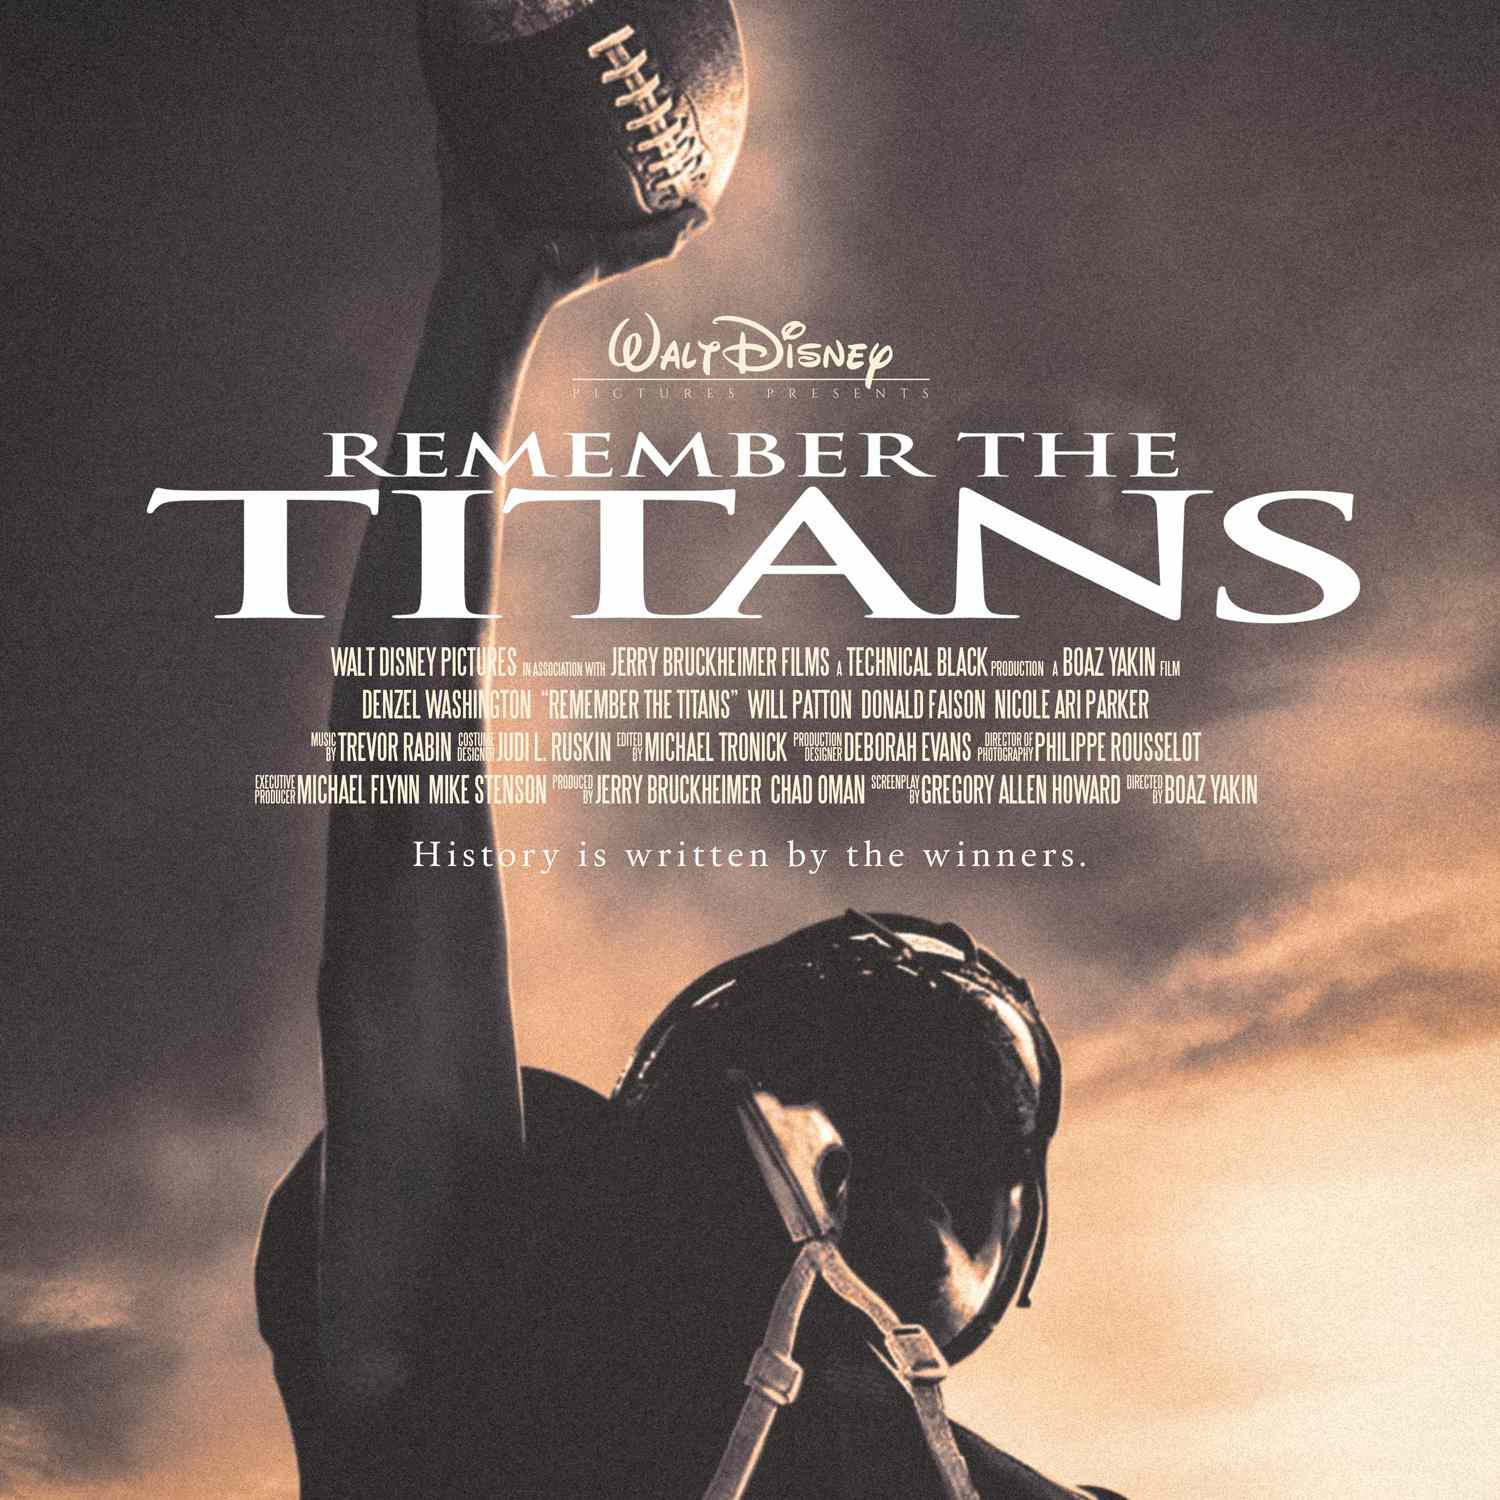 Remember the Titans movie poster.